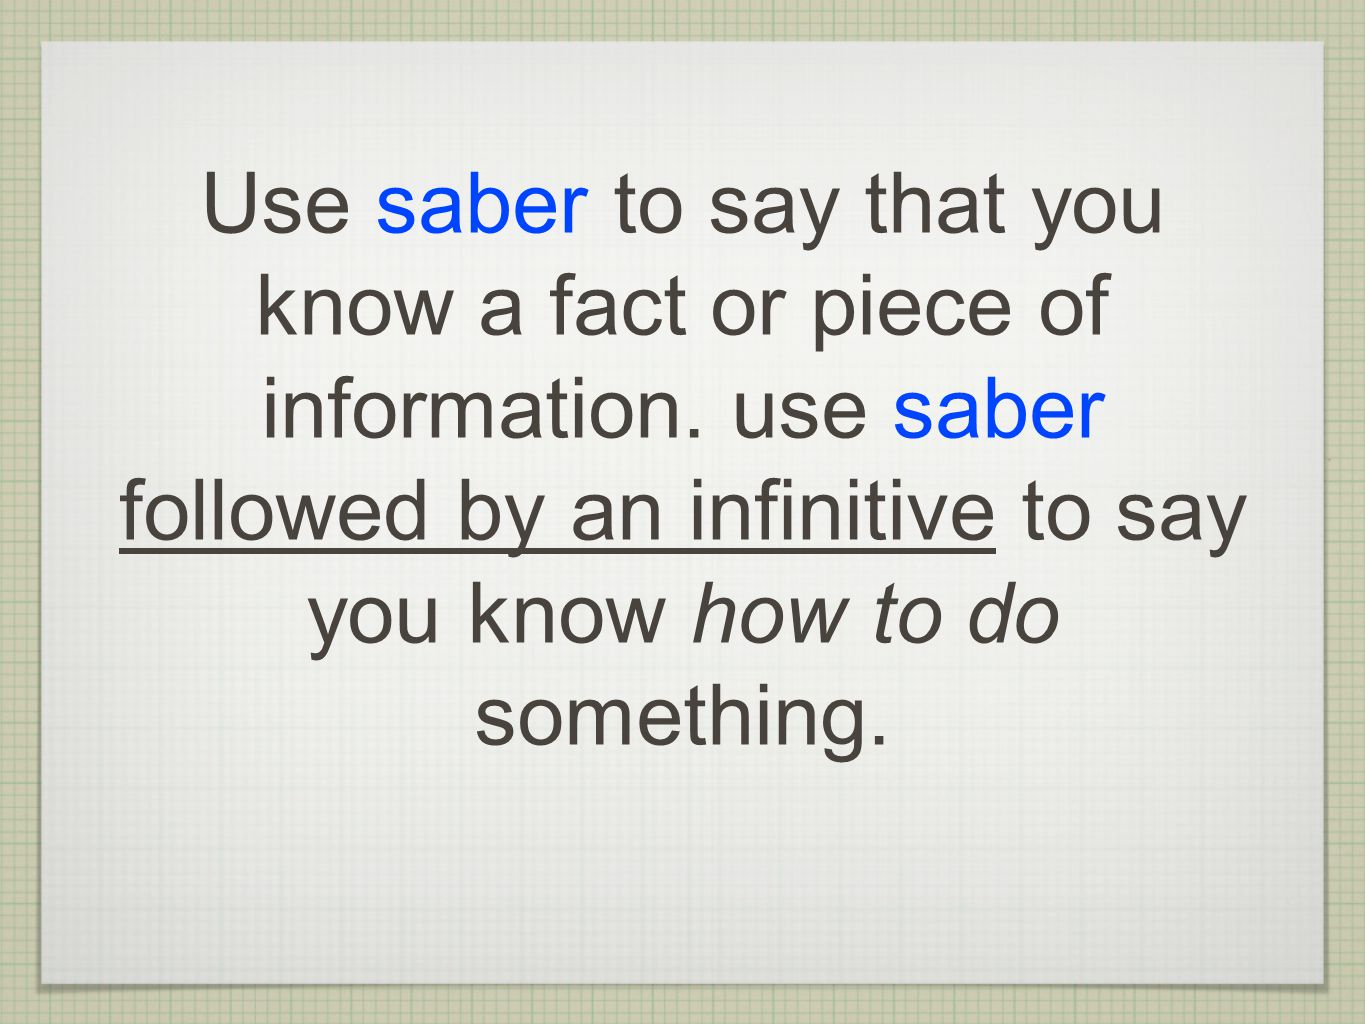 Use saber to say that you know a fact or piece of information